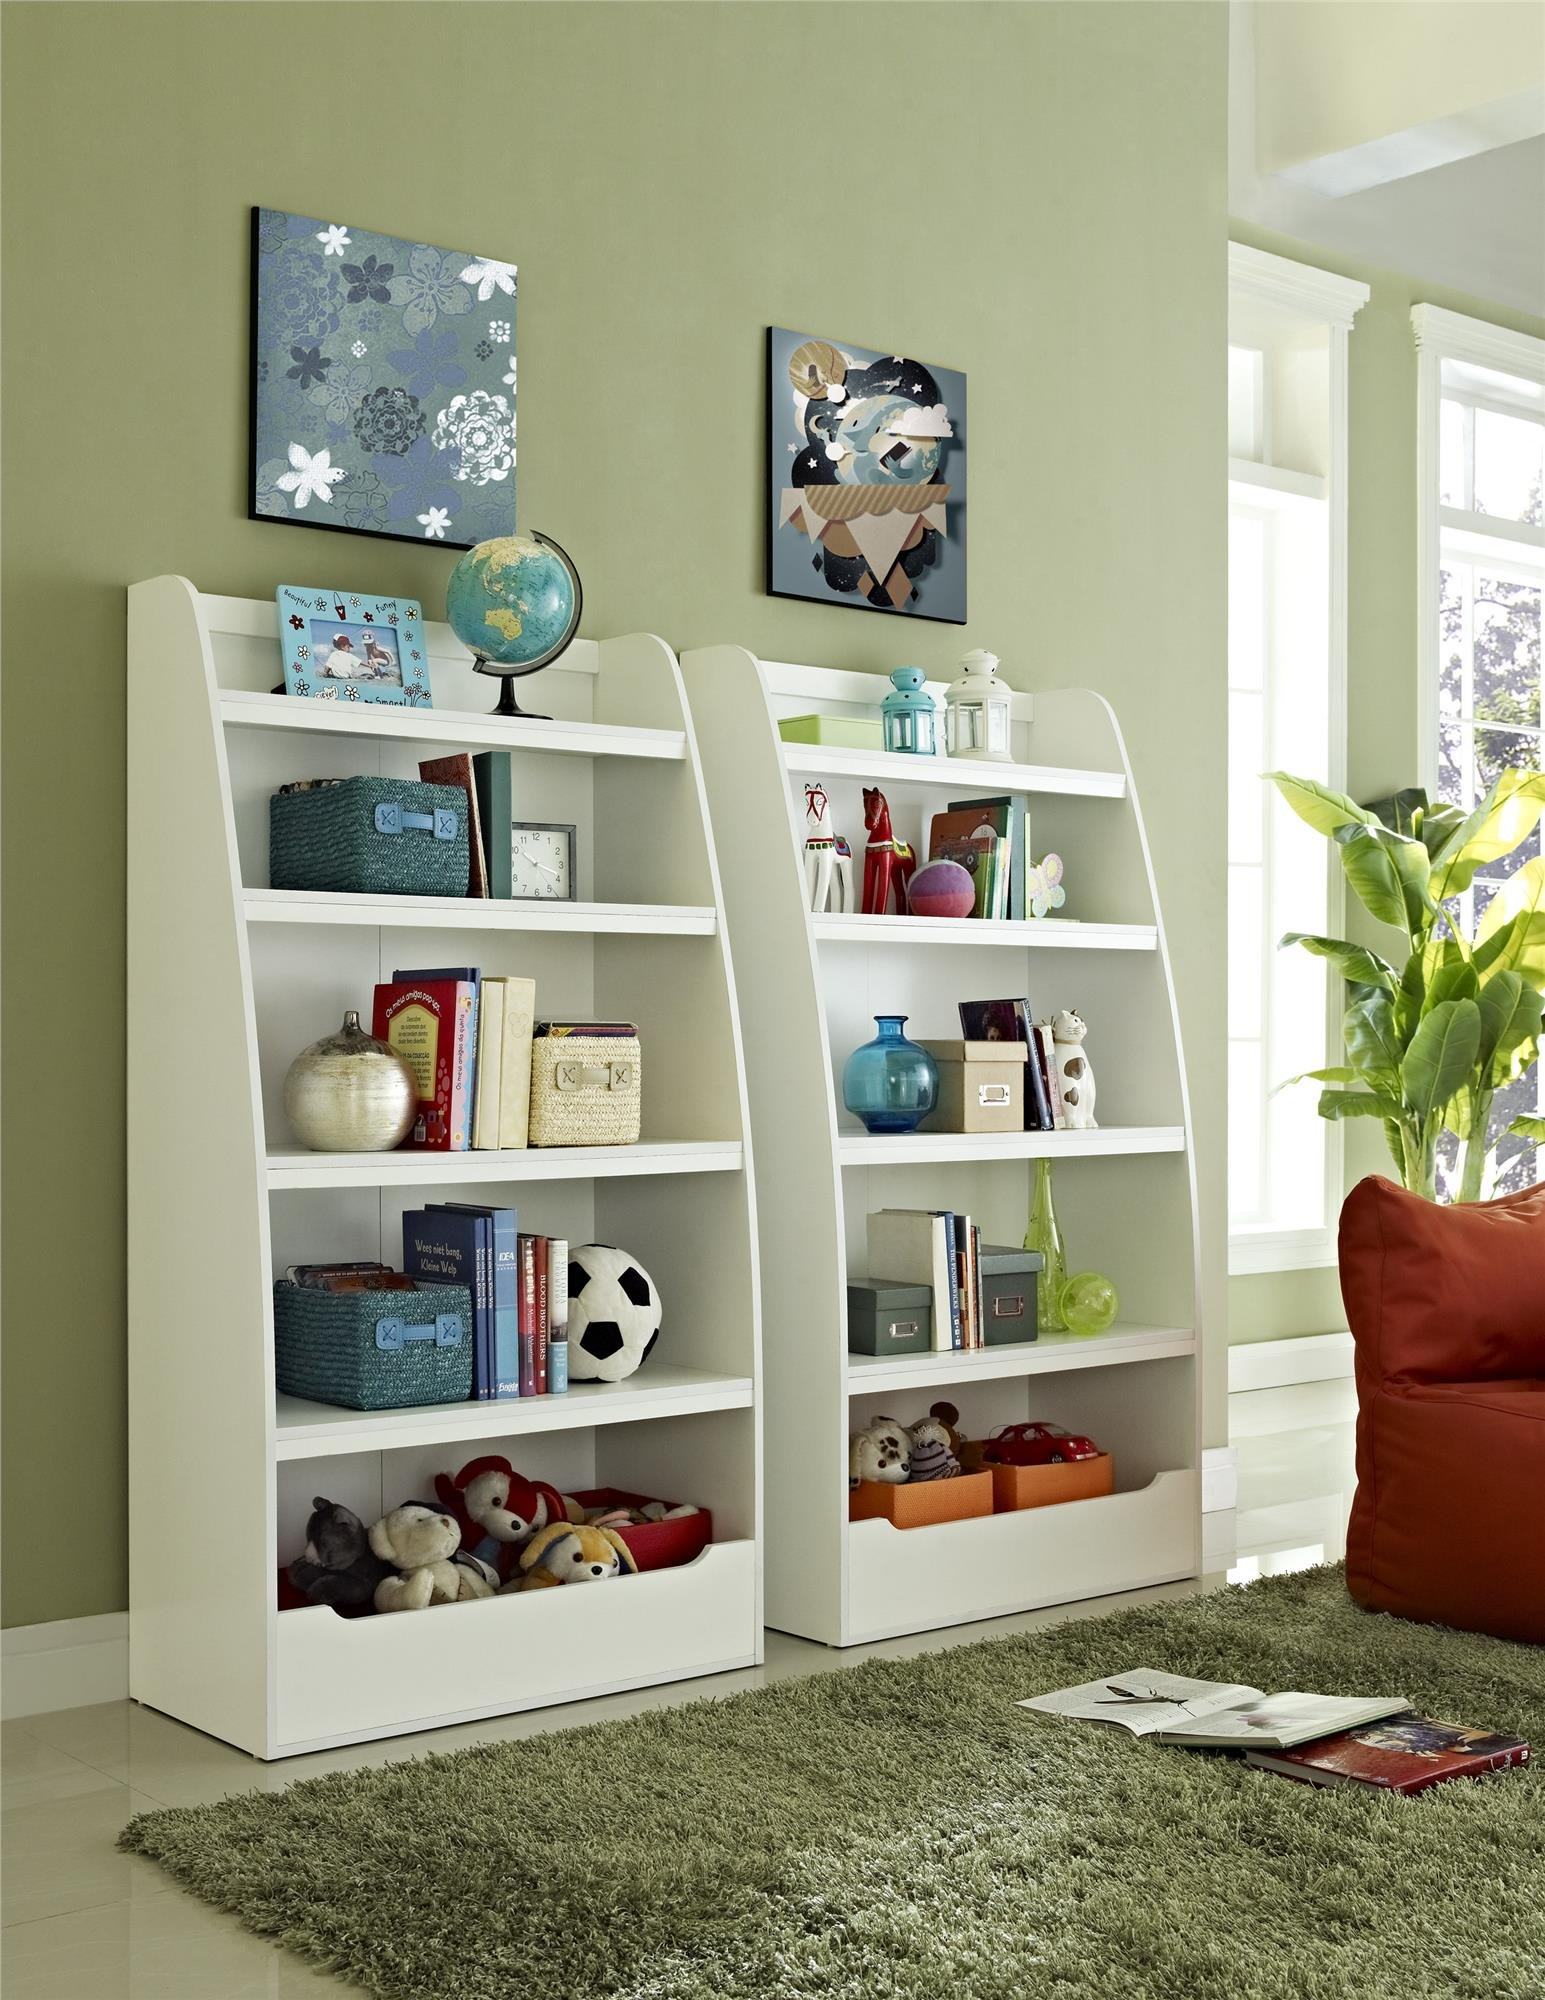 Ameriwood Home Hazel Kids' 4 Shelf Bookcase, White by Ameriwood Home (Image #6)